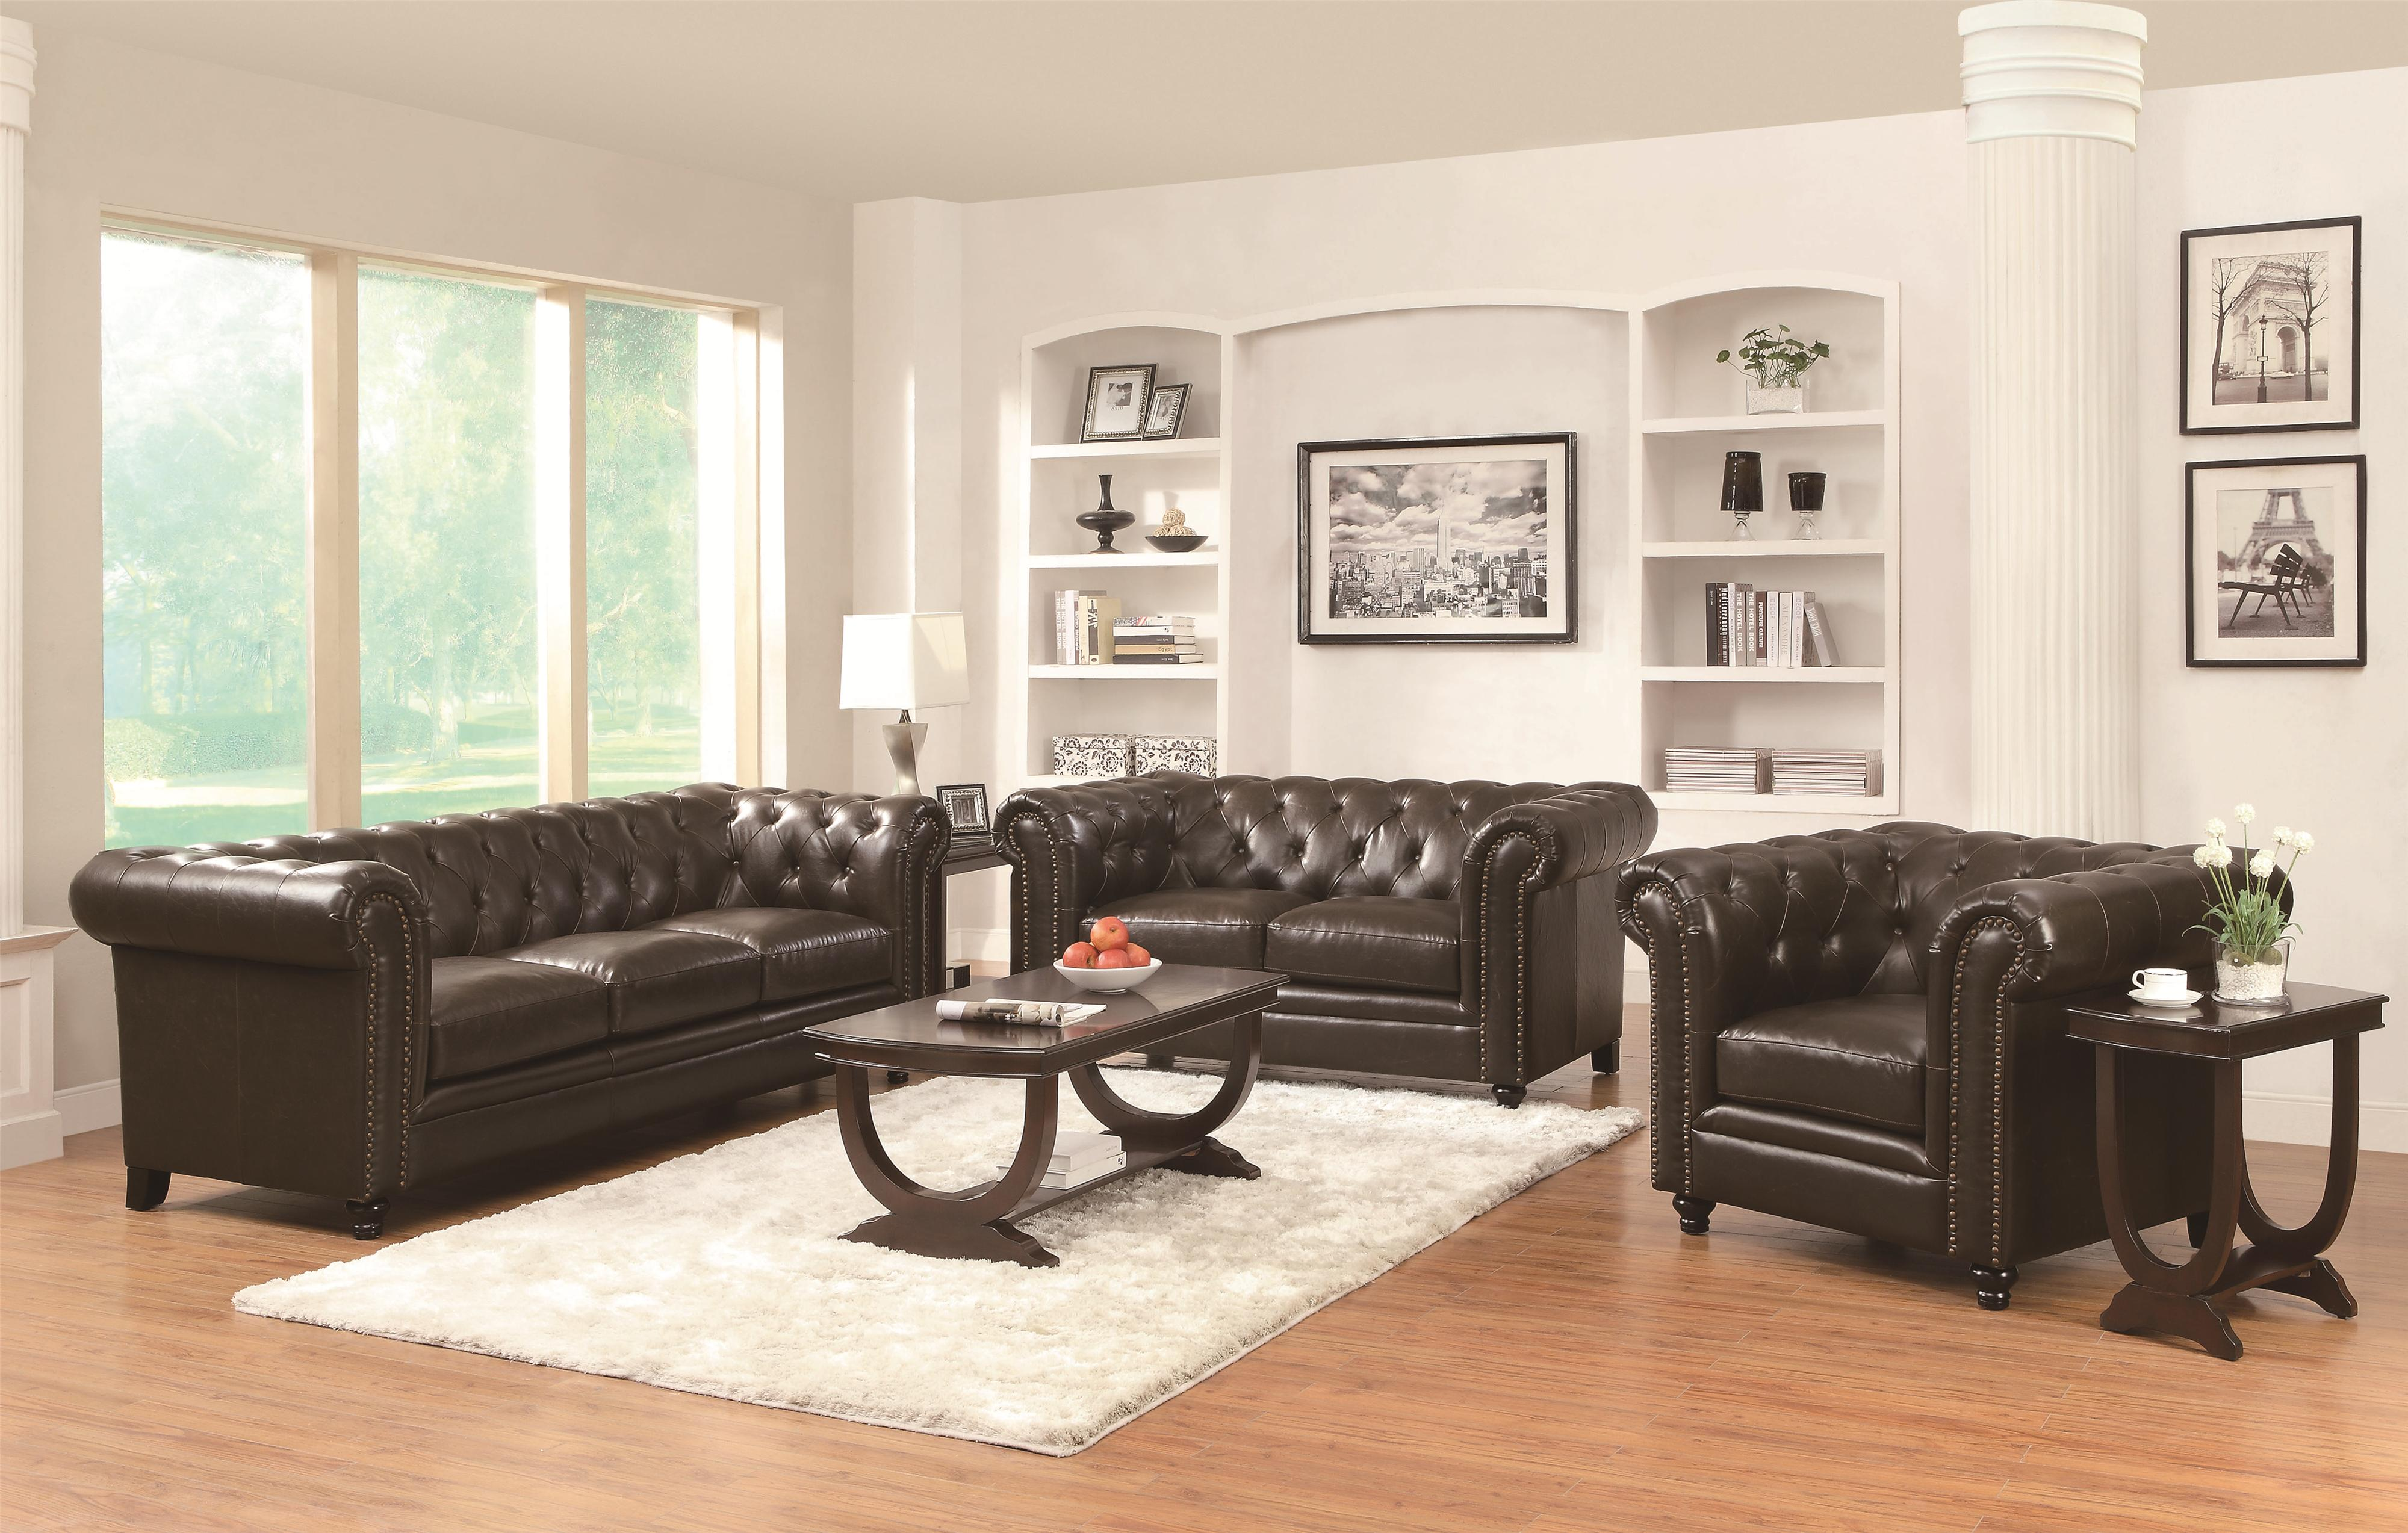 full chair white chesterfield of teal size sofas tufted leather sofa grey velvet couch fabric loveseat and charcoal gray